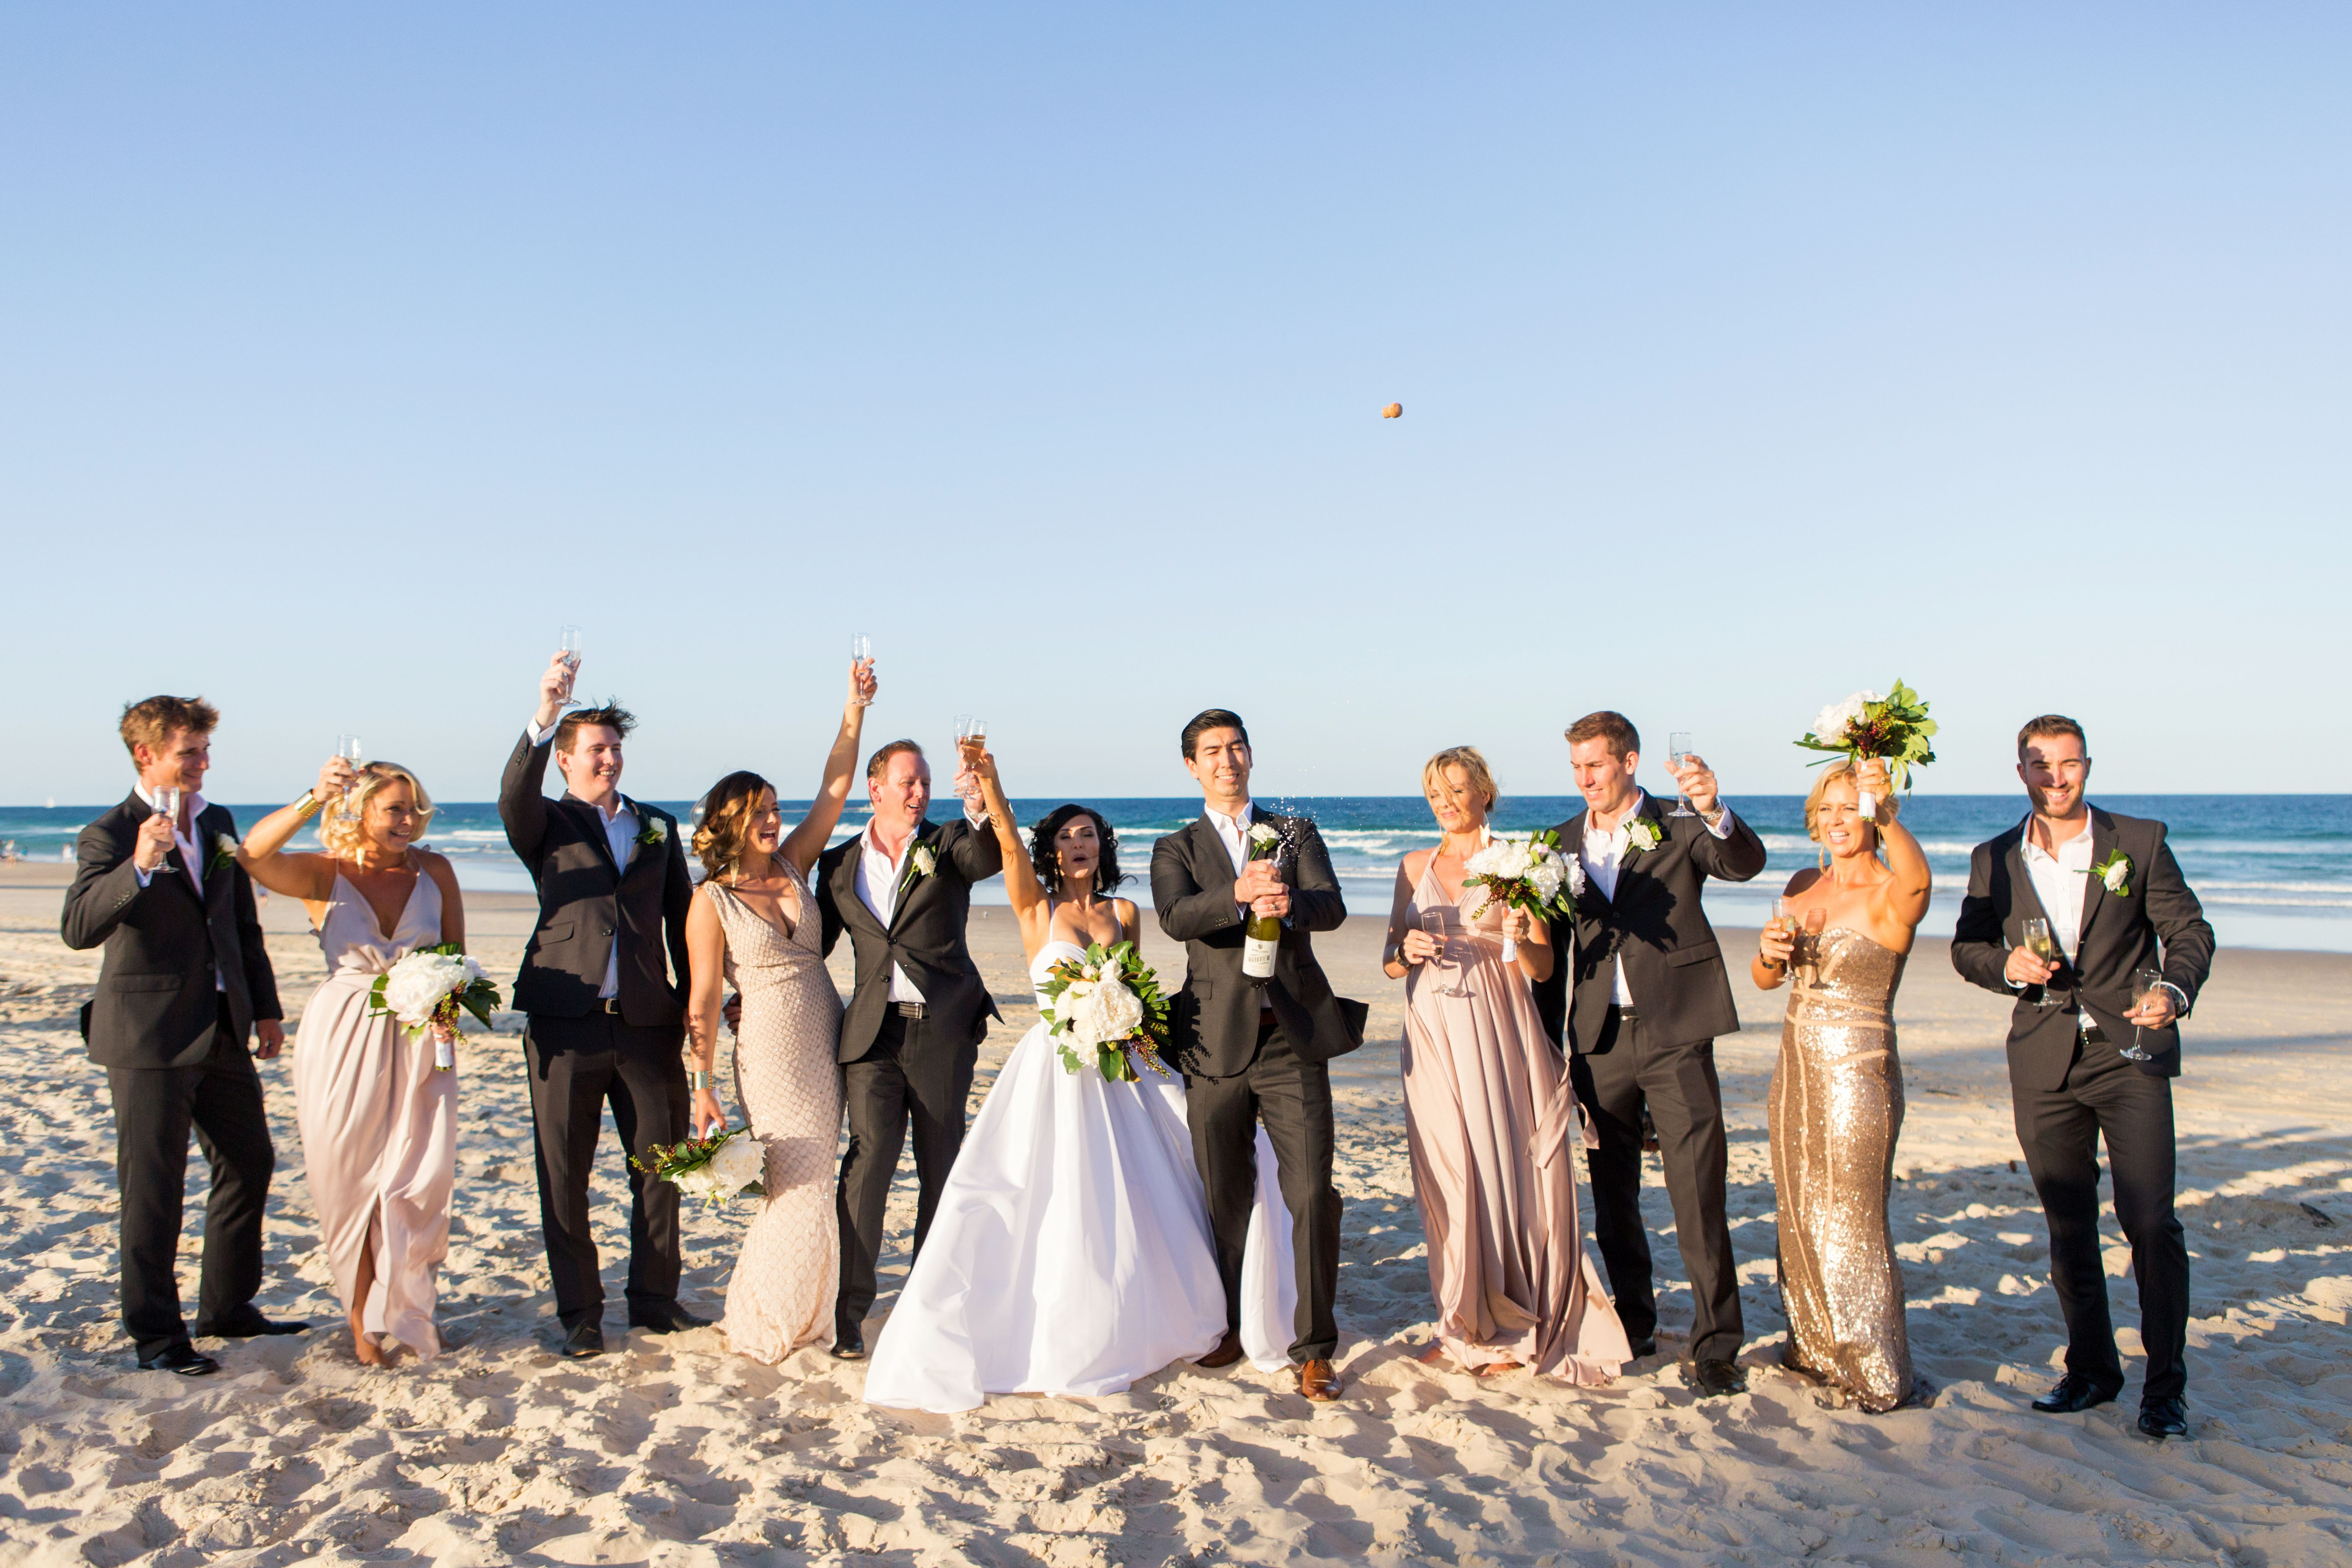 And As The Only Absolute Beachfront Resort On Gold Coast Sheraton Grand Mirage Offers A Superb Backdrop For Wedding Photos Stunning Location To